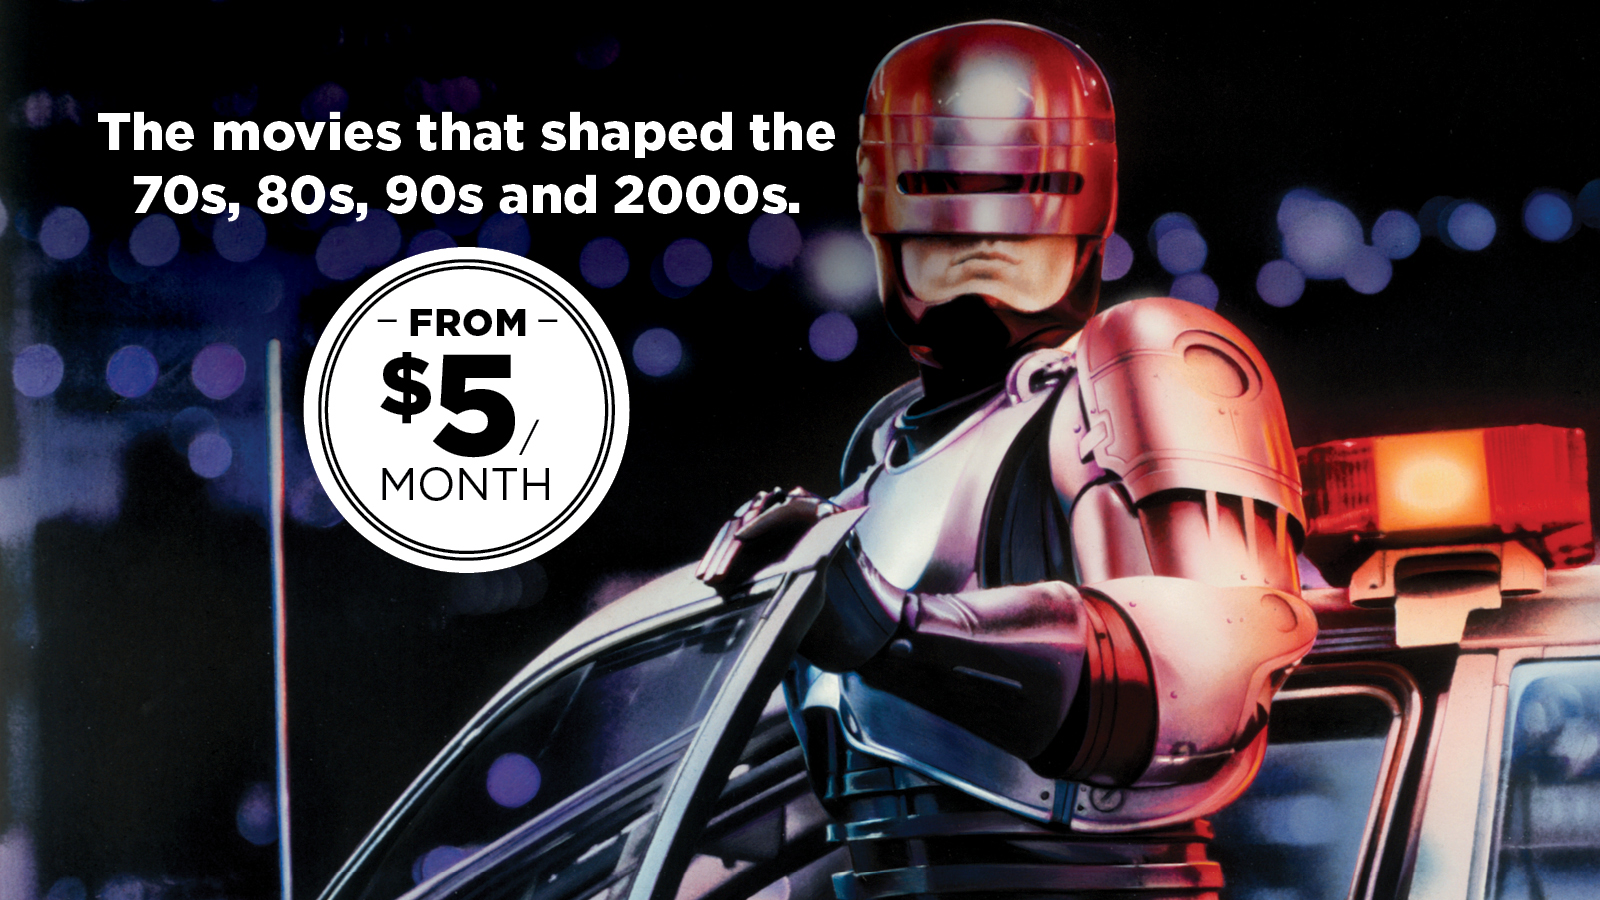 The movies that shaped the 70s, 80s, 90s and 2000s. From $5/month